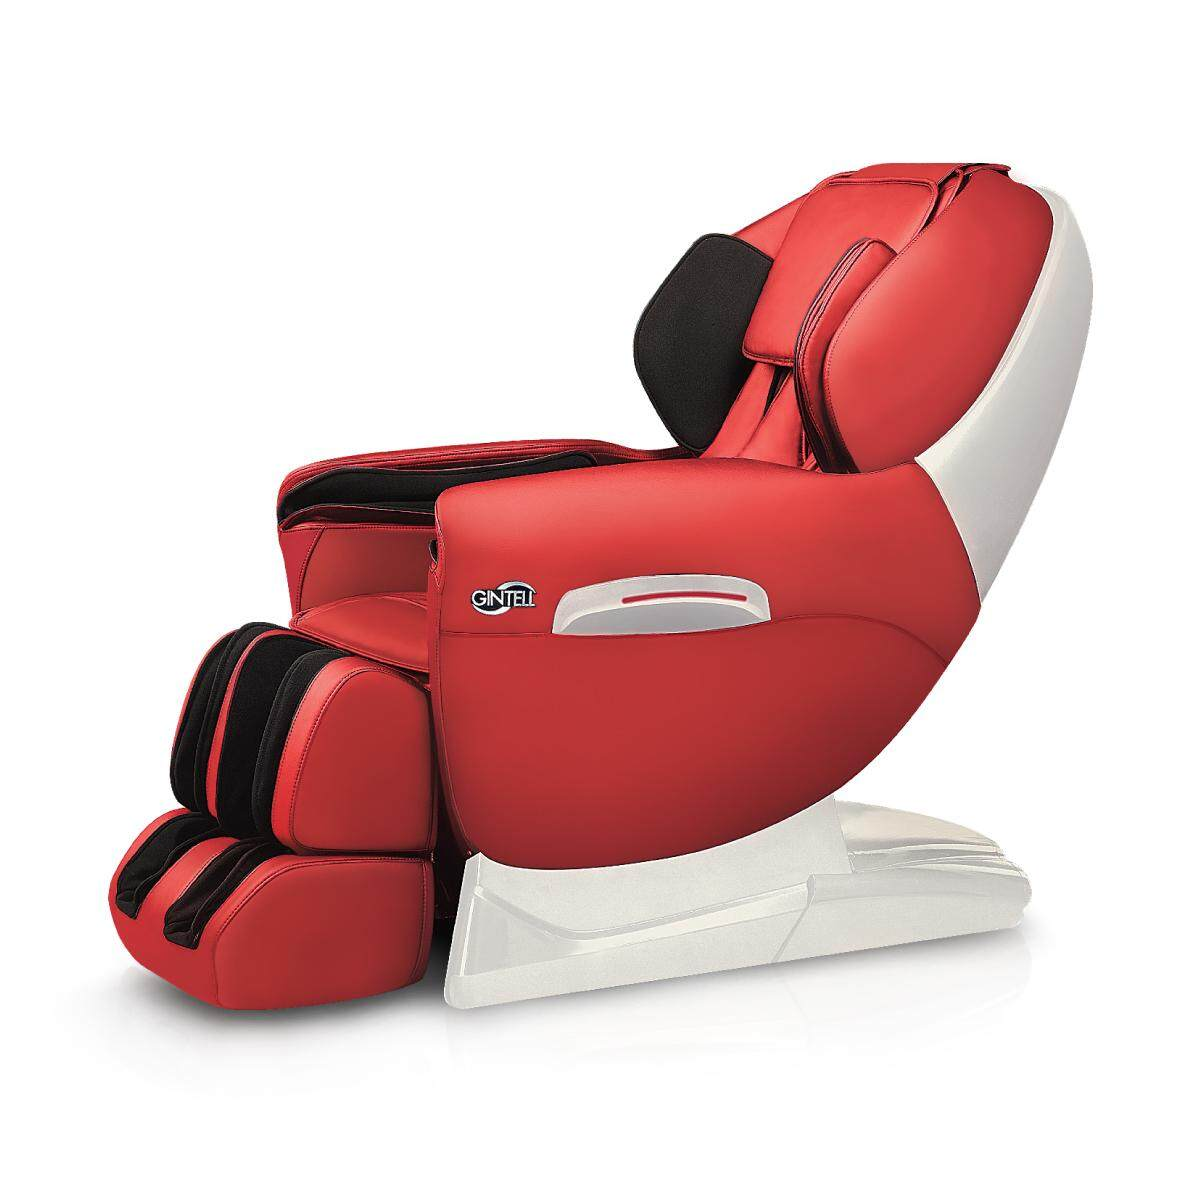 GINTELL DéWise Care Massage Chair (Showroom Unit-Rose Red)